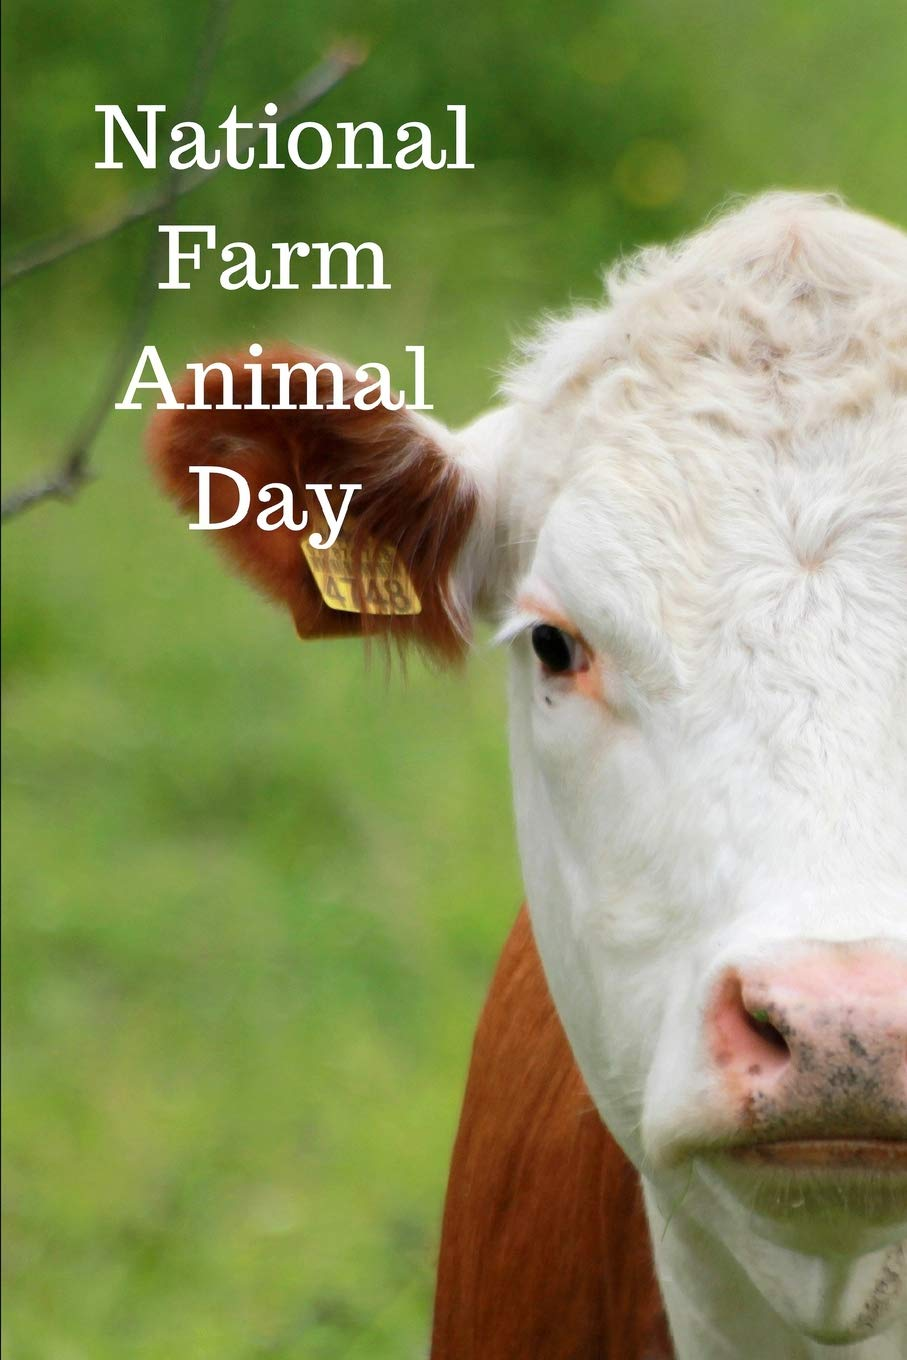 National Farm Animal Day April 10th Celebrate Farm Animal Day Gift Journal This Is A Blank Lined Journal That Makes A Perfect National Farm Animal Pages A Convenient Size To Write